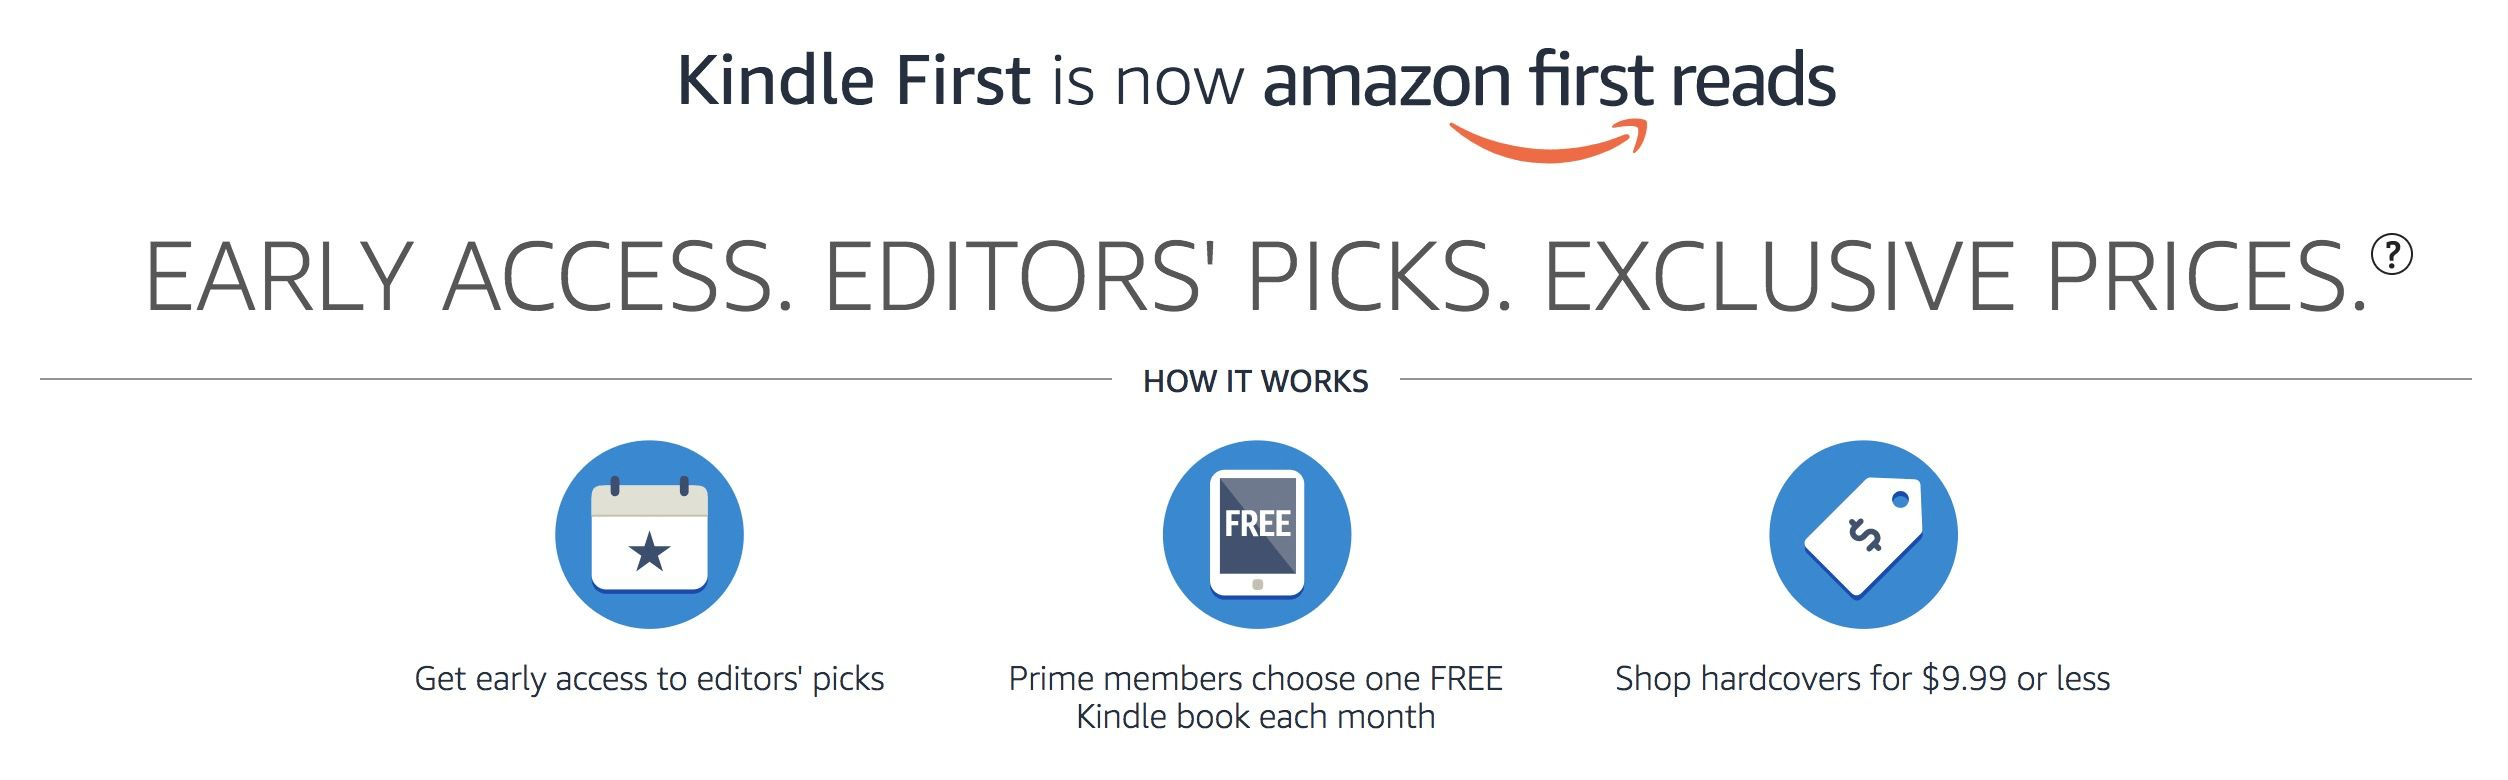 Kindle First November 2018 Amazon First Reads November 2018 Selections 1 Book Free for Amazon